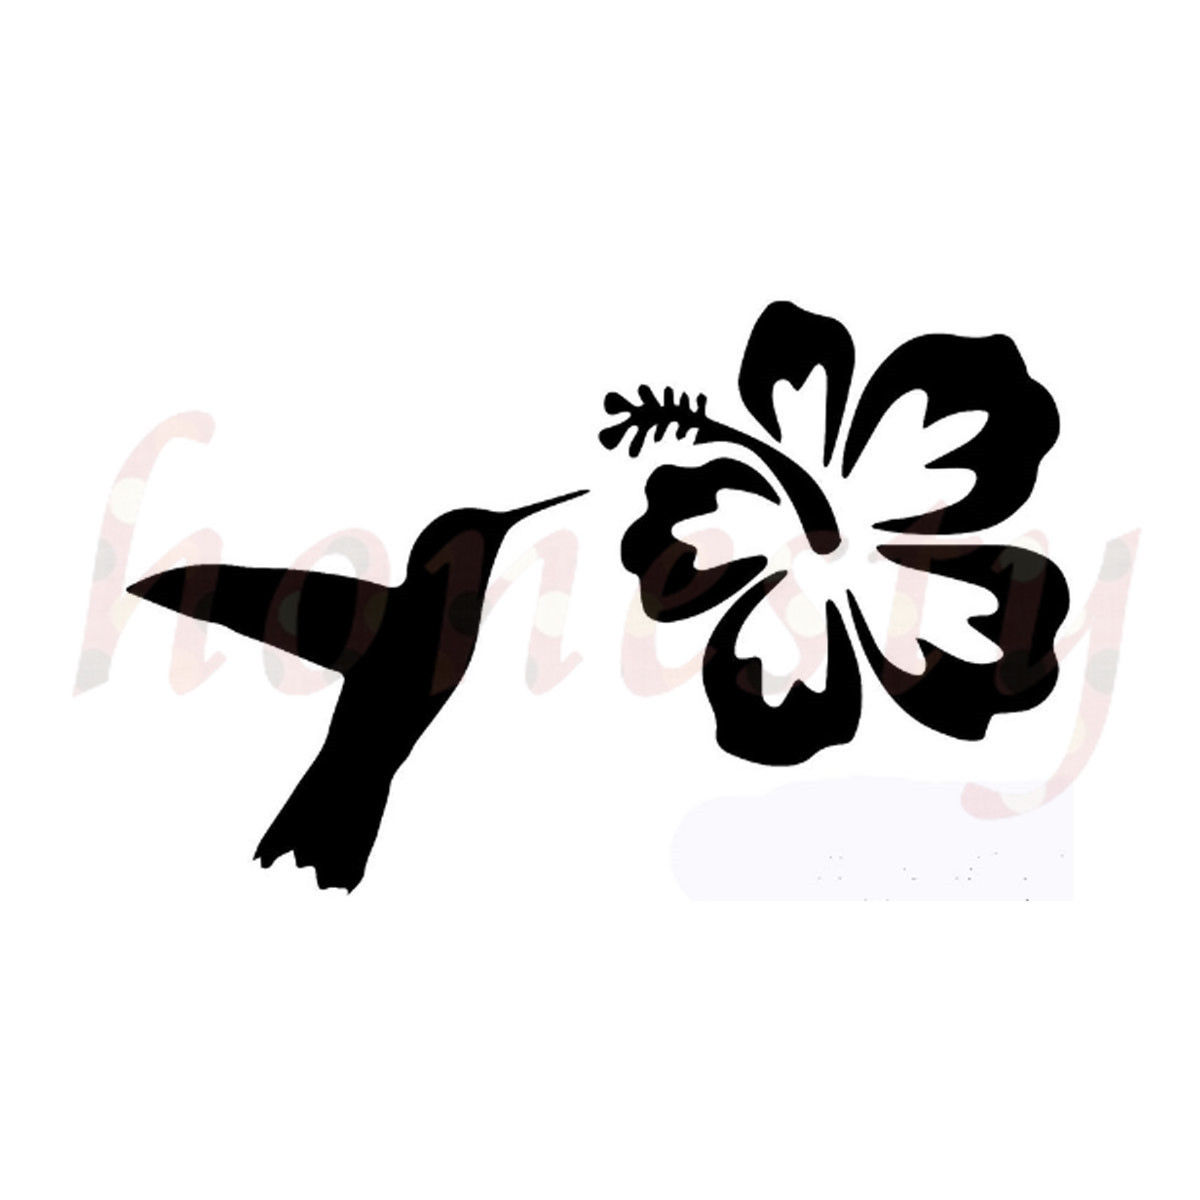 Hummingbird hibiscus flower car stickers glass laptop truck door hummingbird hibiscus flower car stickers glass laptop truck door window pc decal in car stickers from automobiles motorcycles on aliexpress alibaba izmirmasajfo